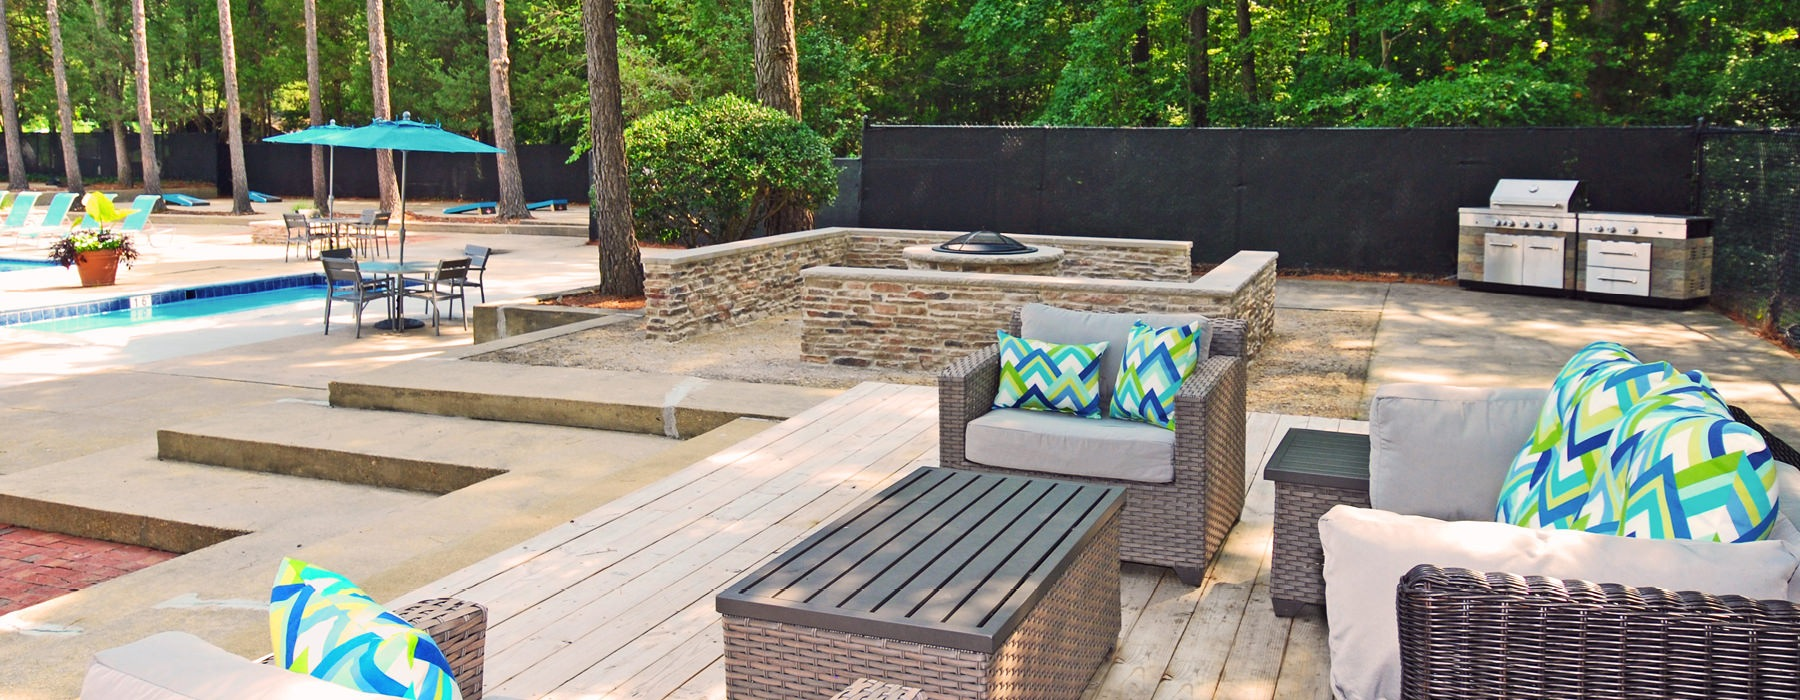 fire pit and sitting areas and tables to socialize